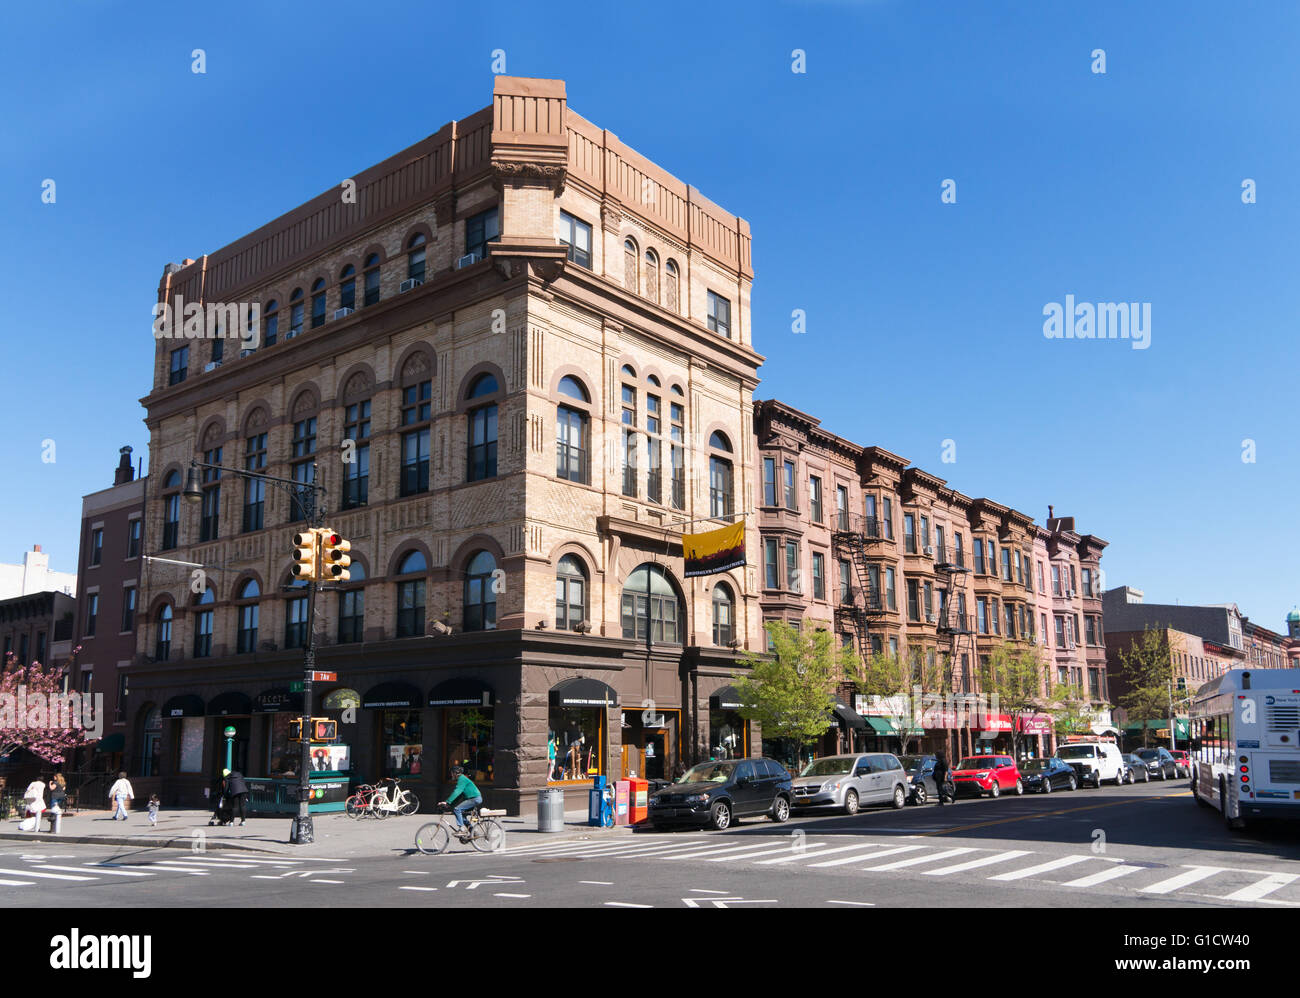 328 7th Avenue corner 9th Street Brooklyn Industries building, New York, USA - Stock Image